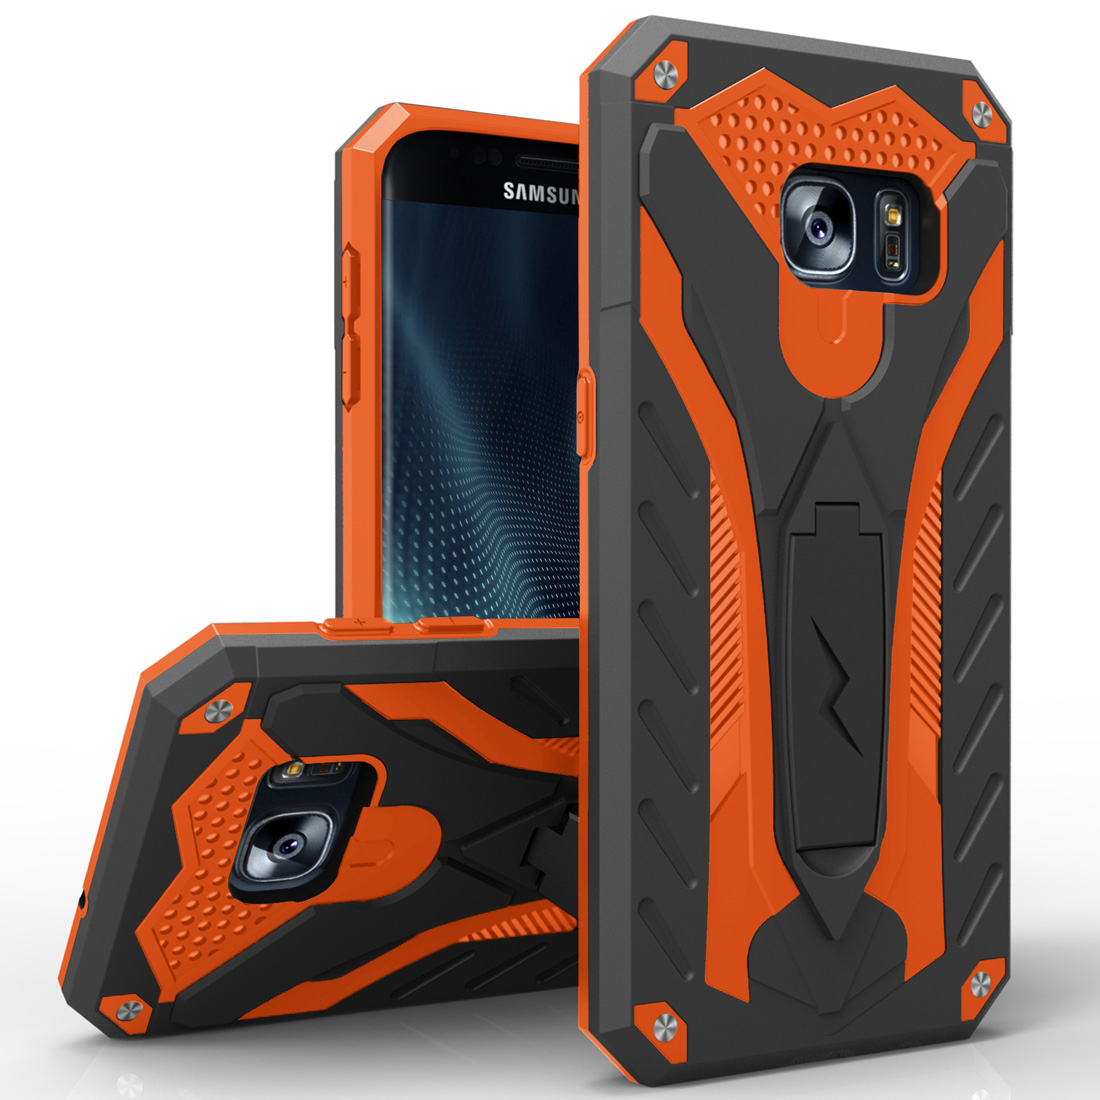 Samsung Galaxy S7 Edge Case, STATIC Dual Layer Hard Case TPU Hybrid [Military Grade] w/ Kickstand & Shock Absorption [Black/ Orange]